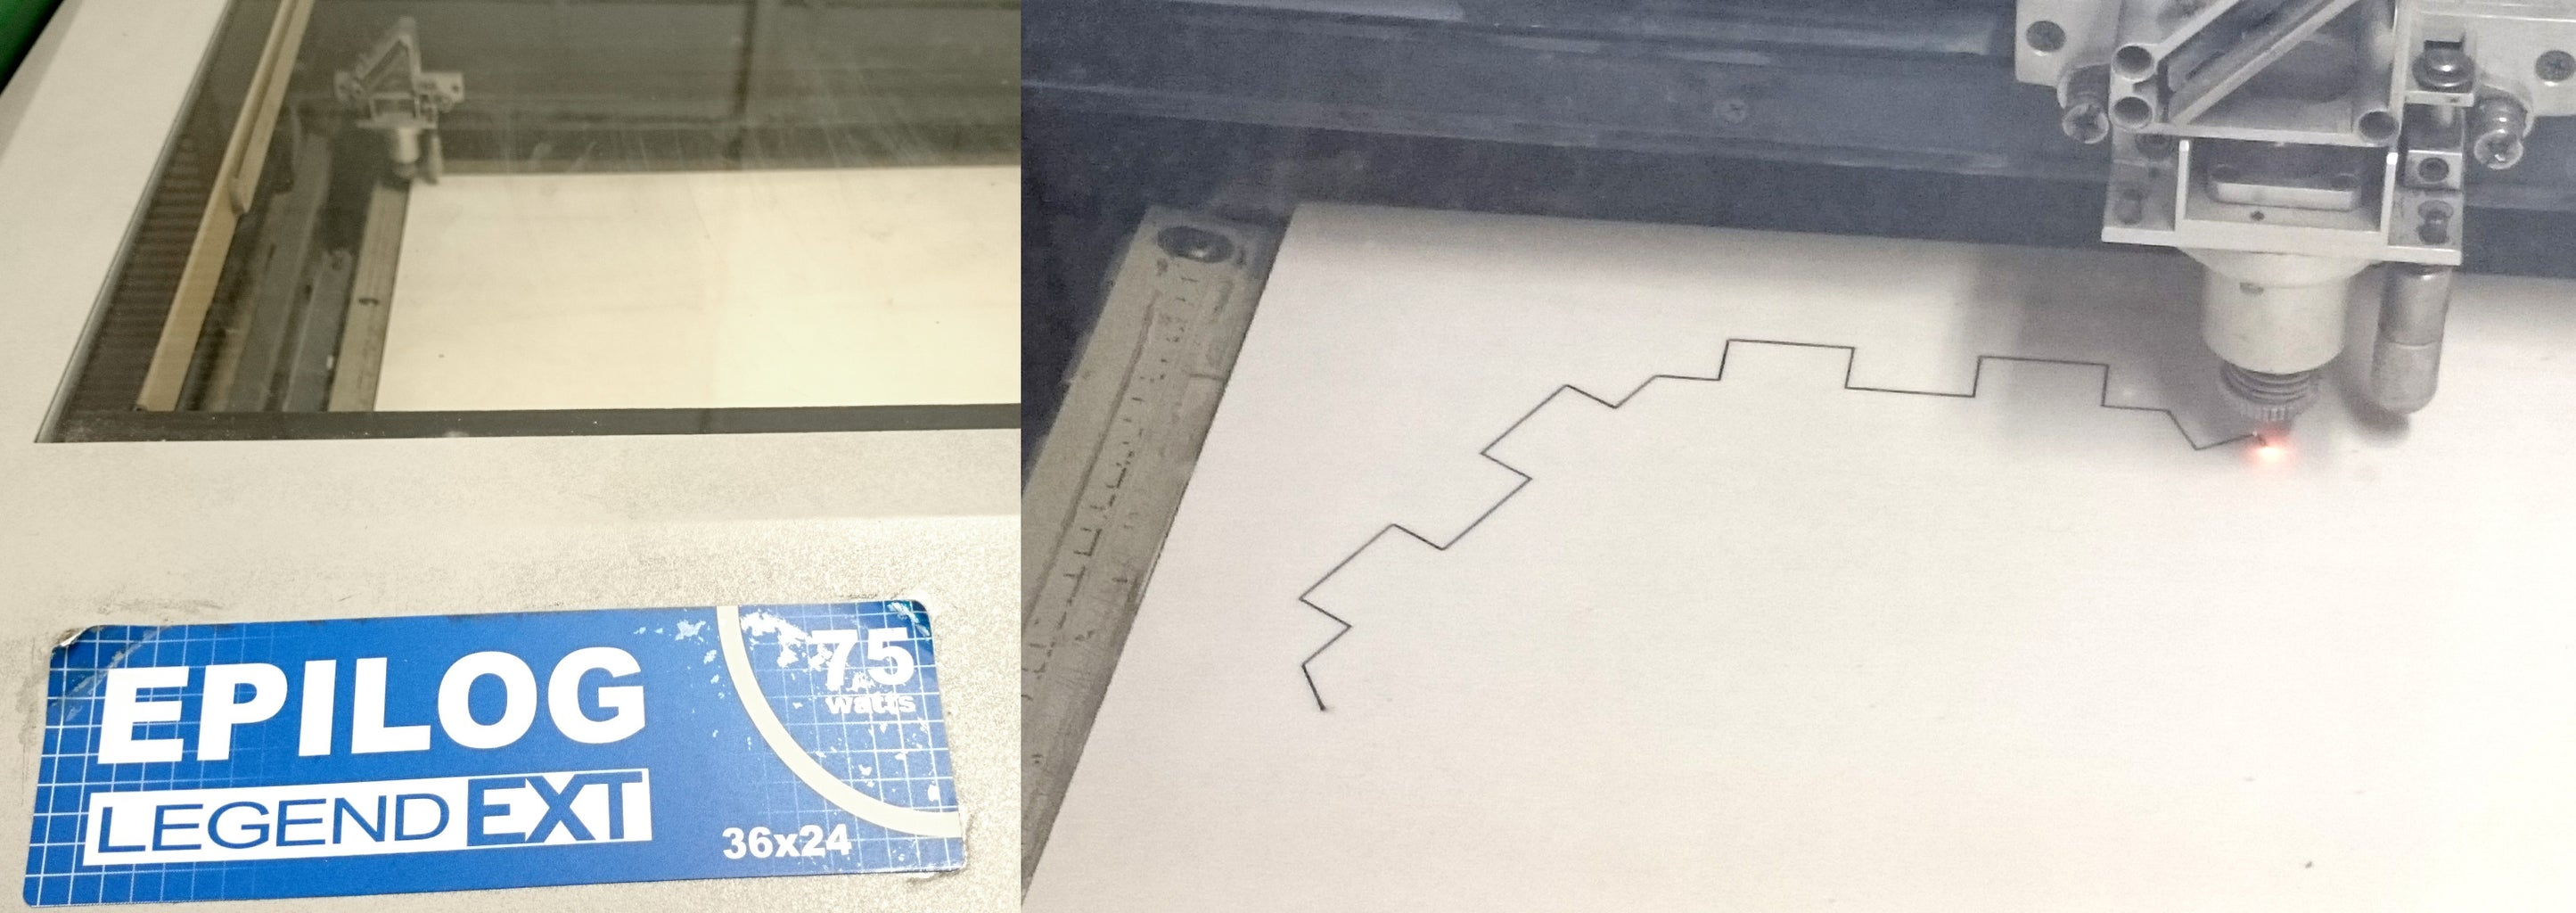 Using the Laser Cutter